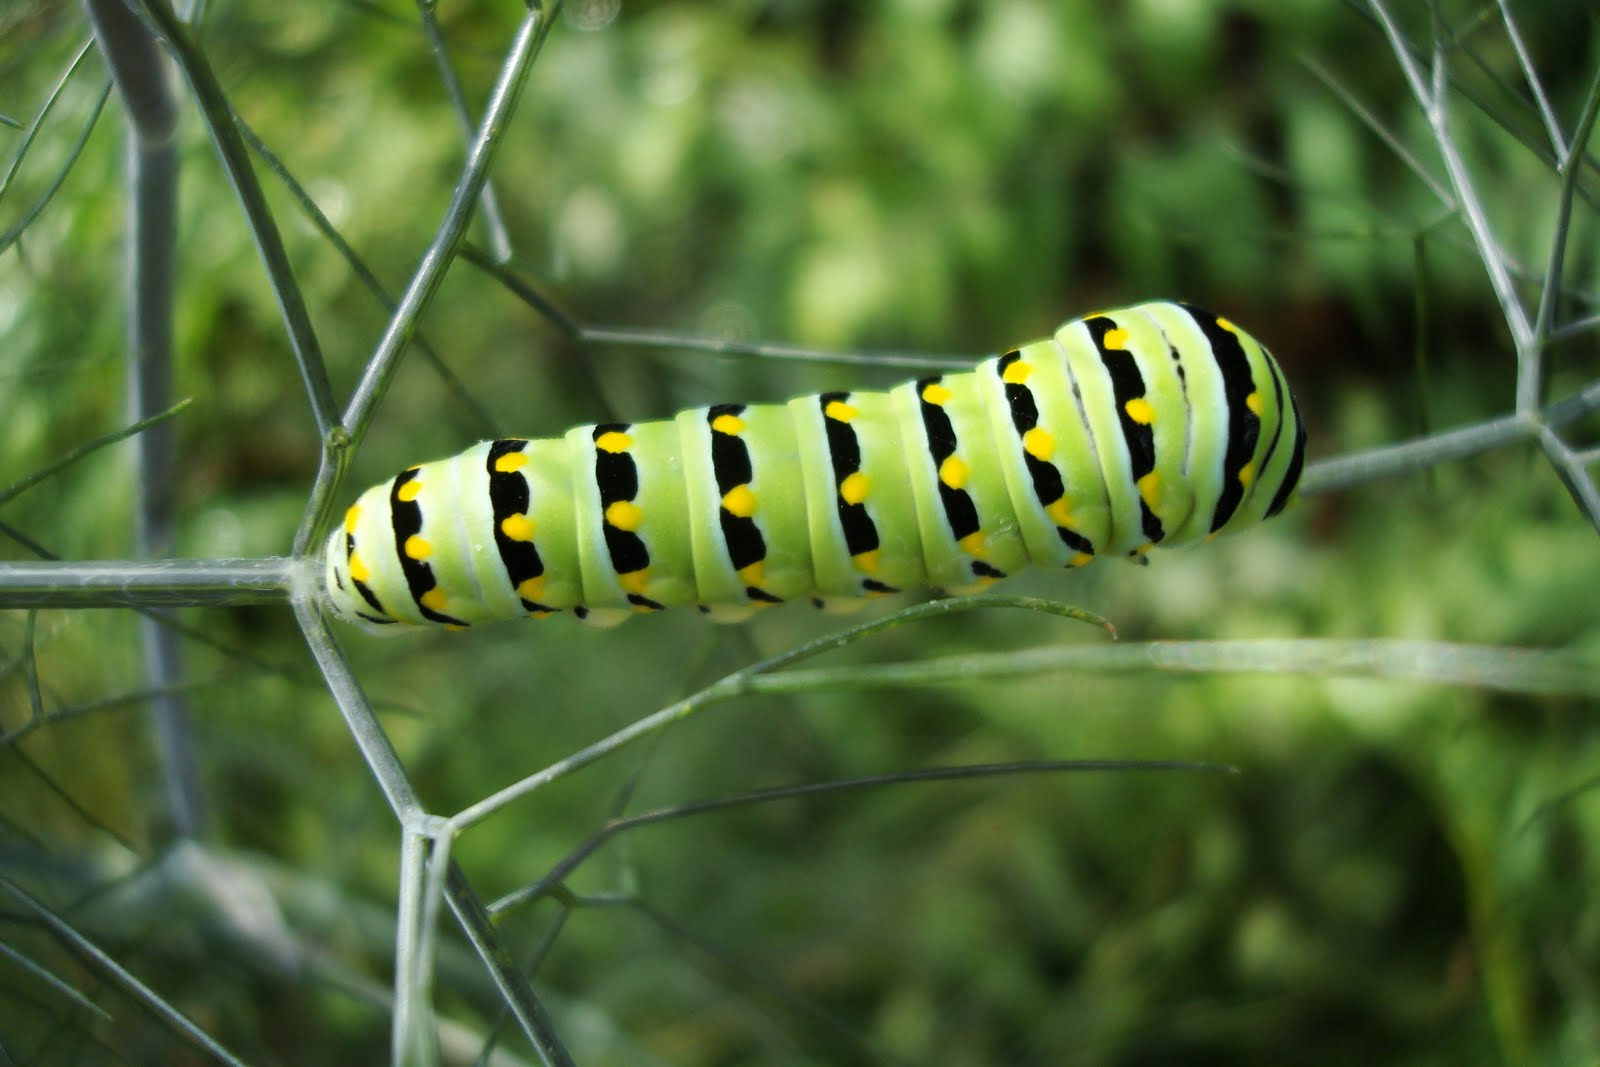 Flowers and Nature in my Garden: Black Swallowtail Caterpillar Black Swallowtail Caterpillar